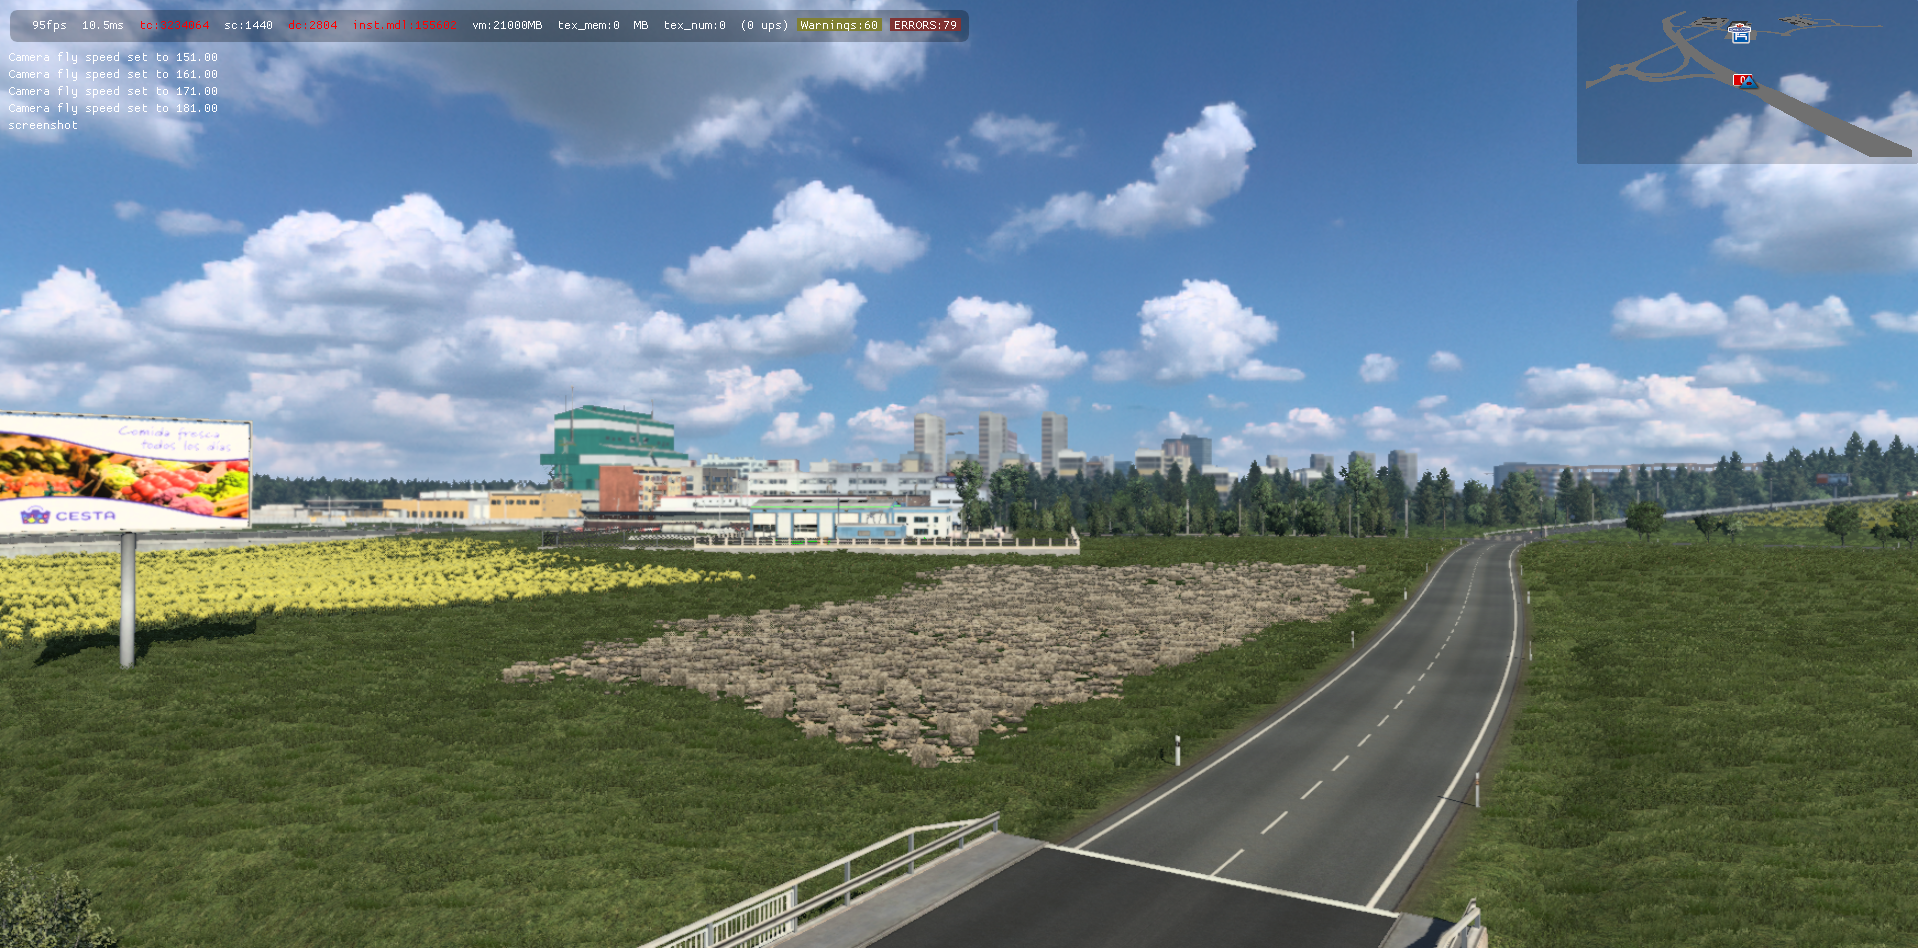 ets2_20210629_204610_00.png